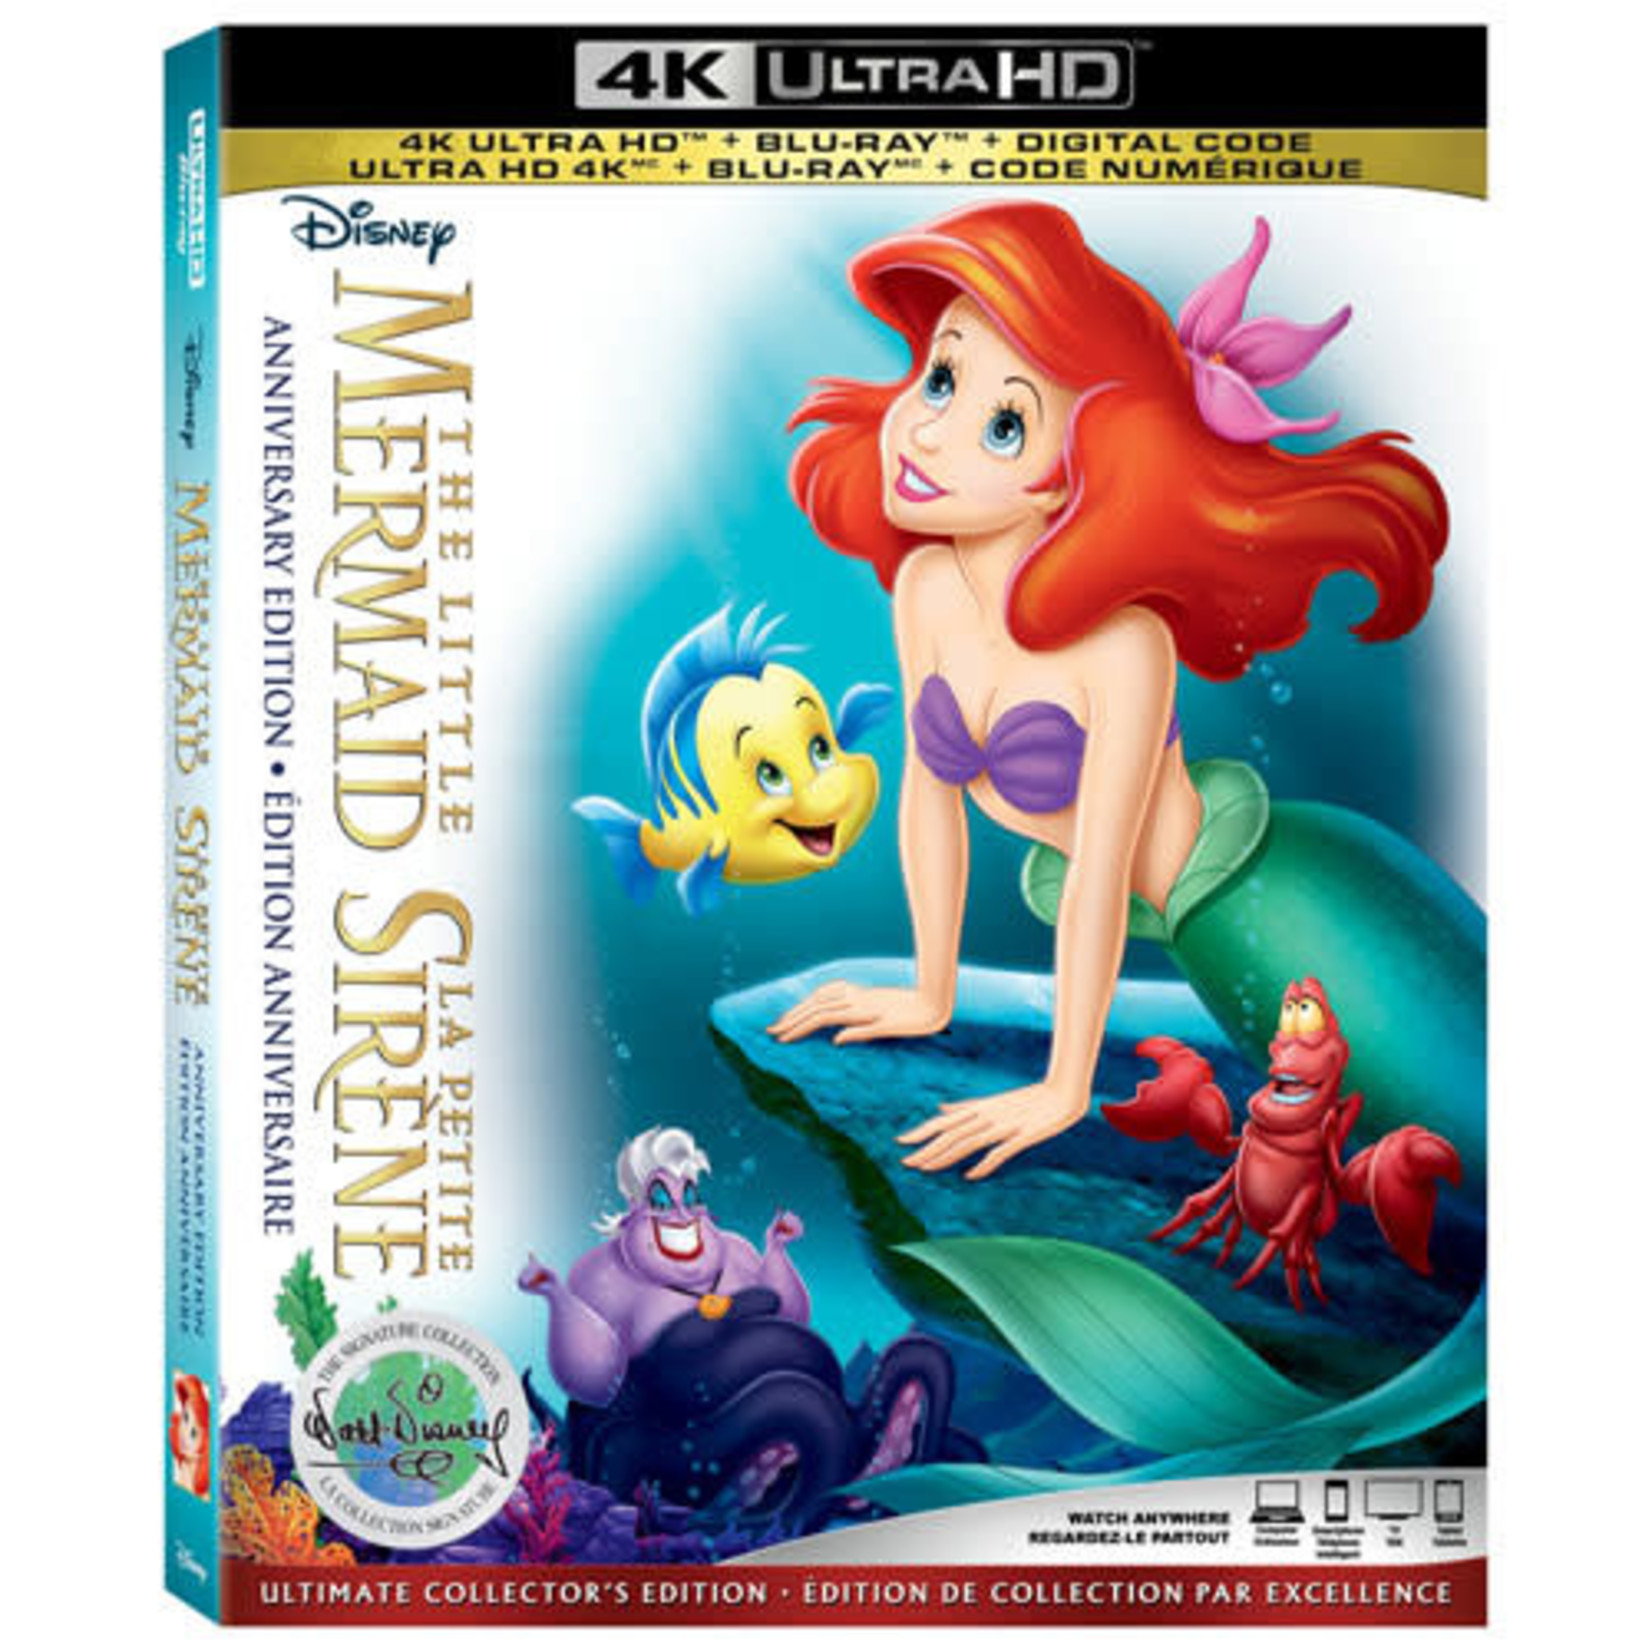 The Little Mermaid: Anniversary Edition (The Walt Disney Signature Collection) (French)(4K Ultra HD)(Blu-ray Combo)